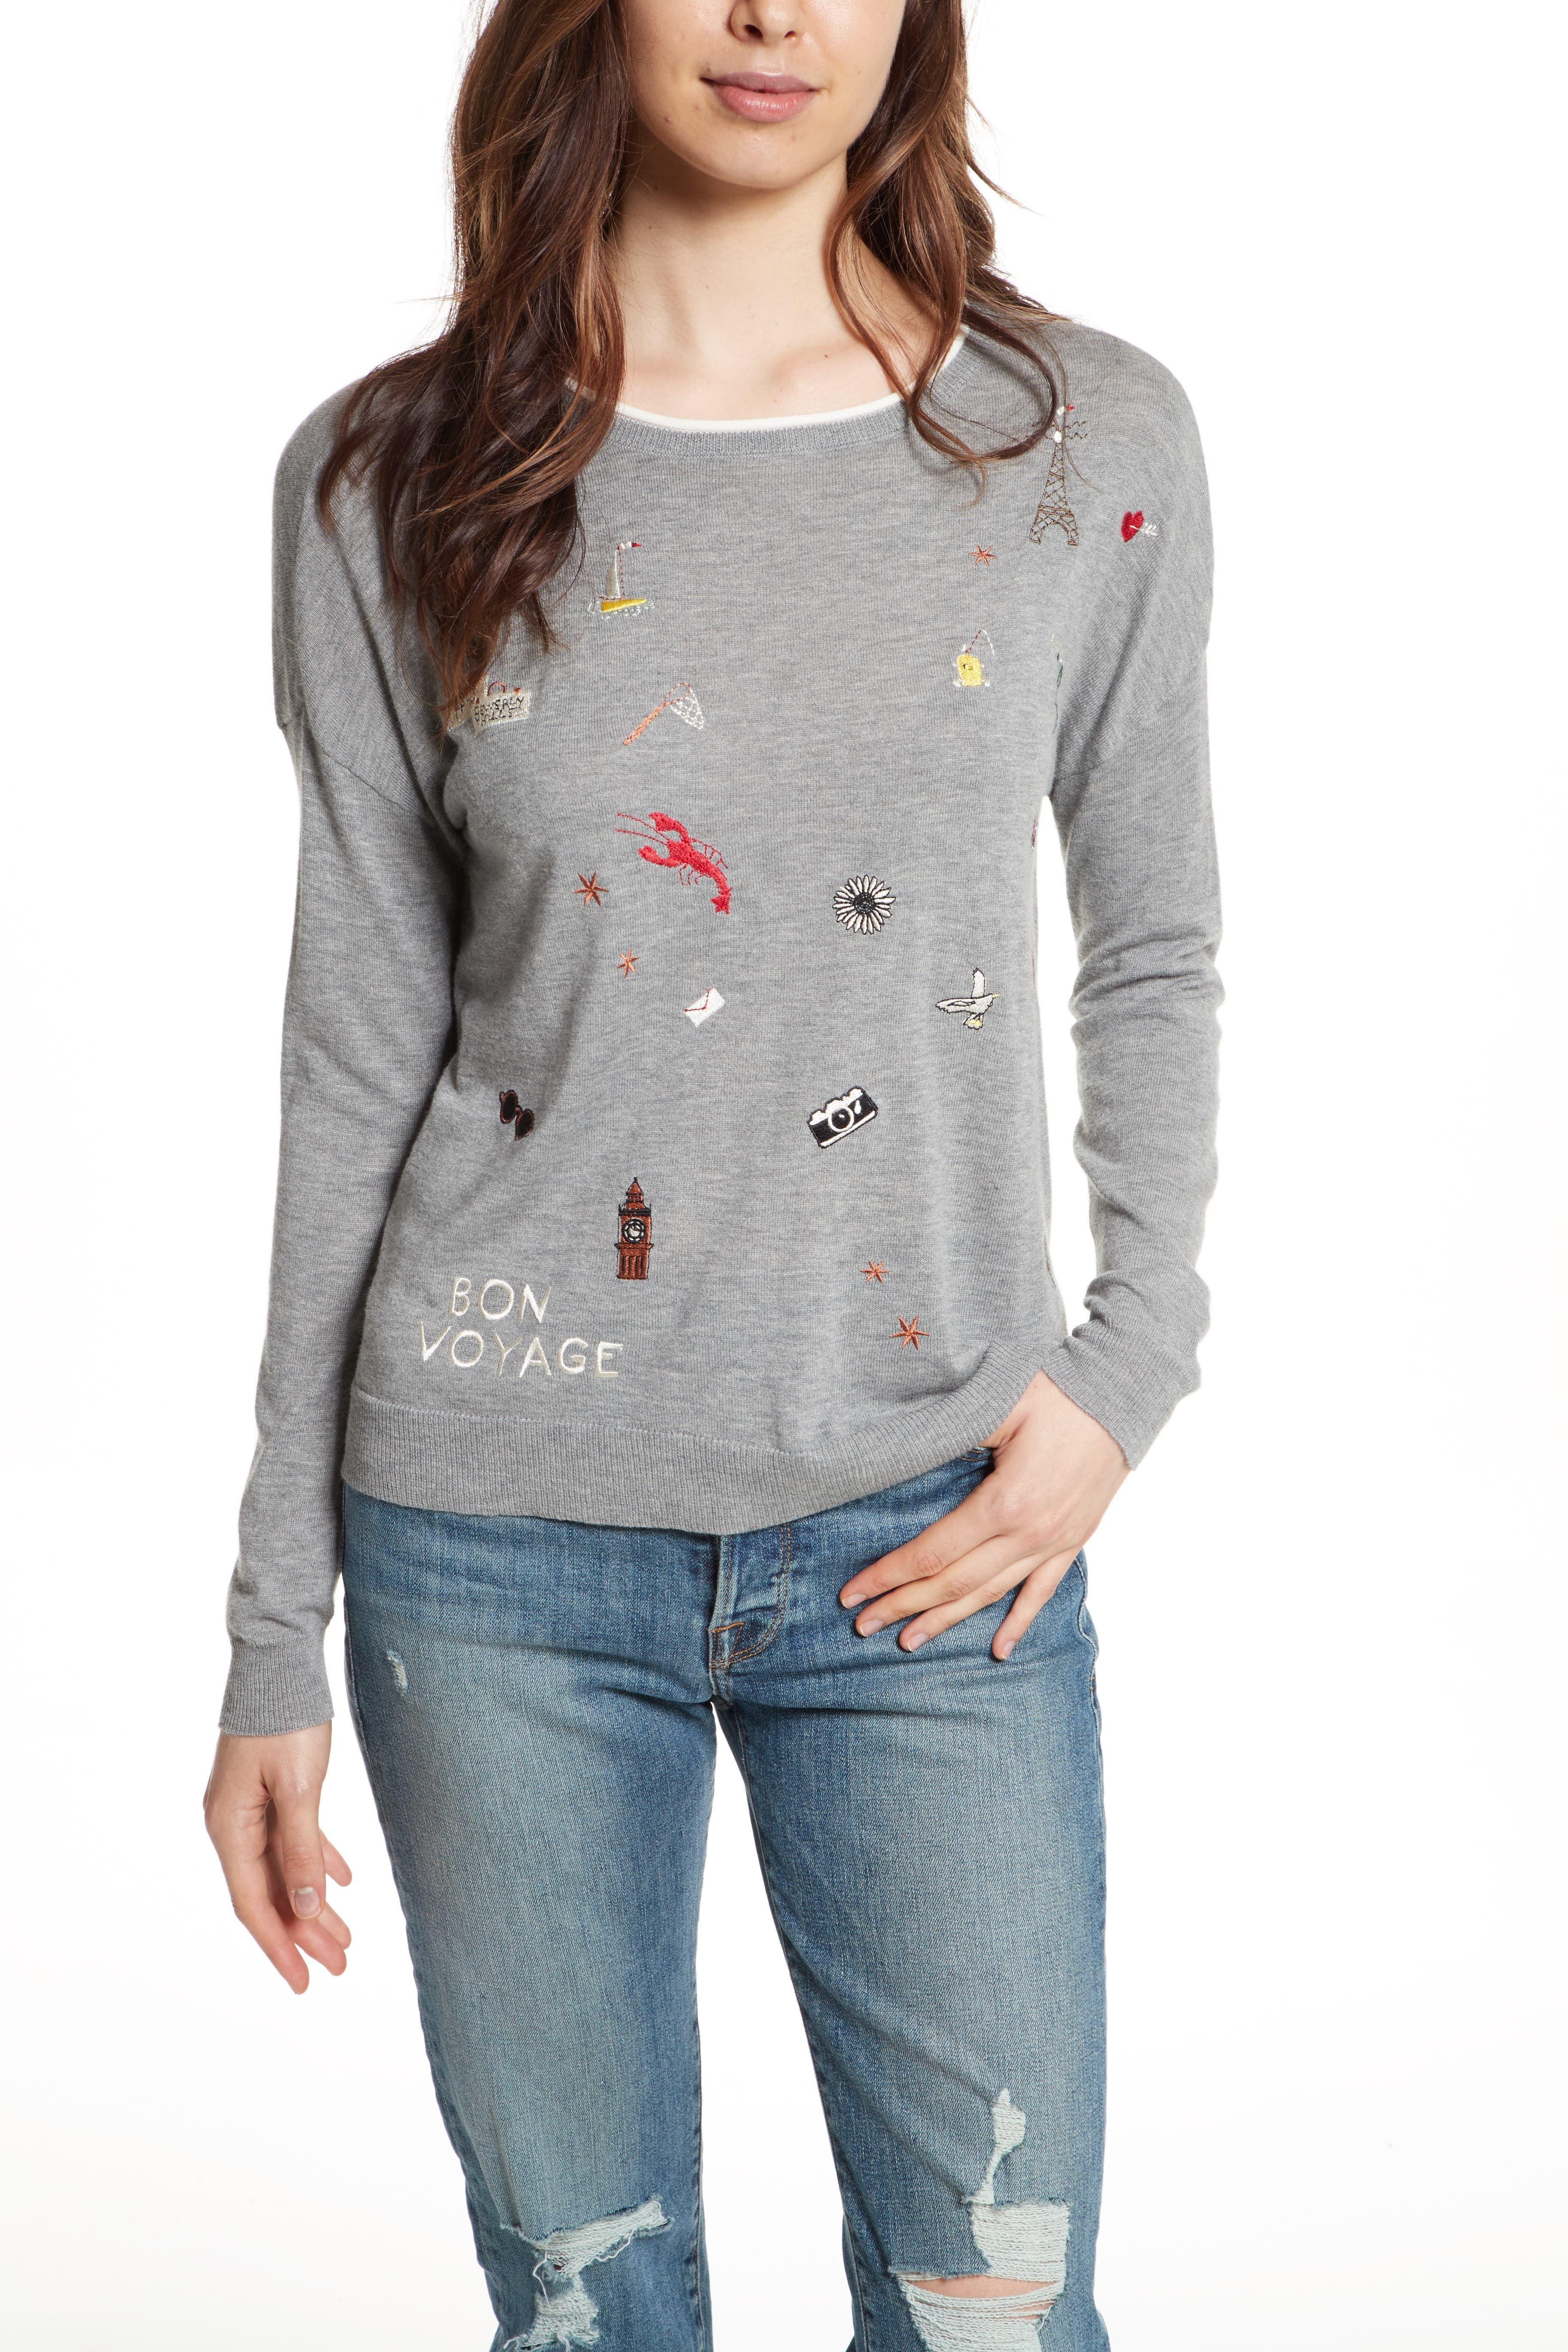 Eloisa B Embroidered Sweater,                         Main,                         color, Heather Grey/ Porcelain